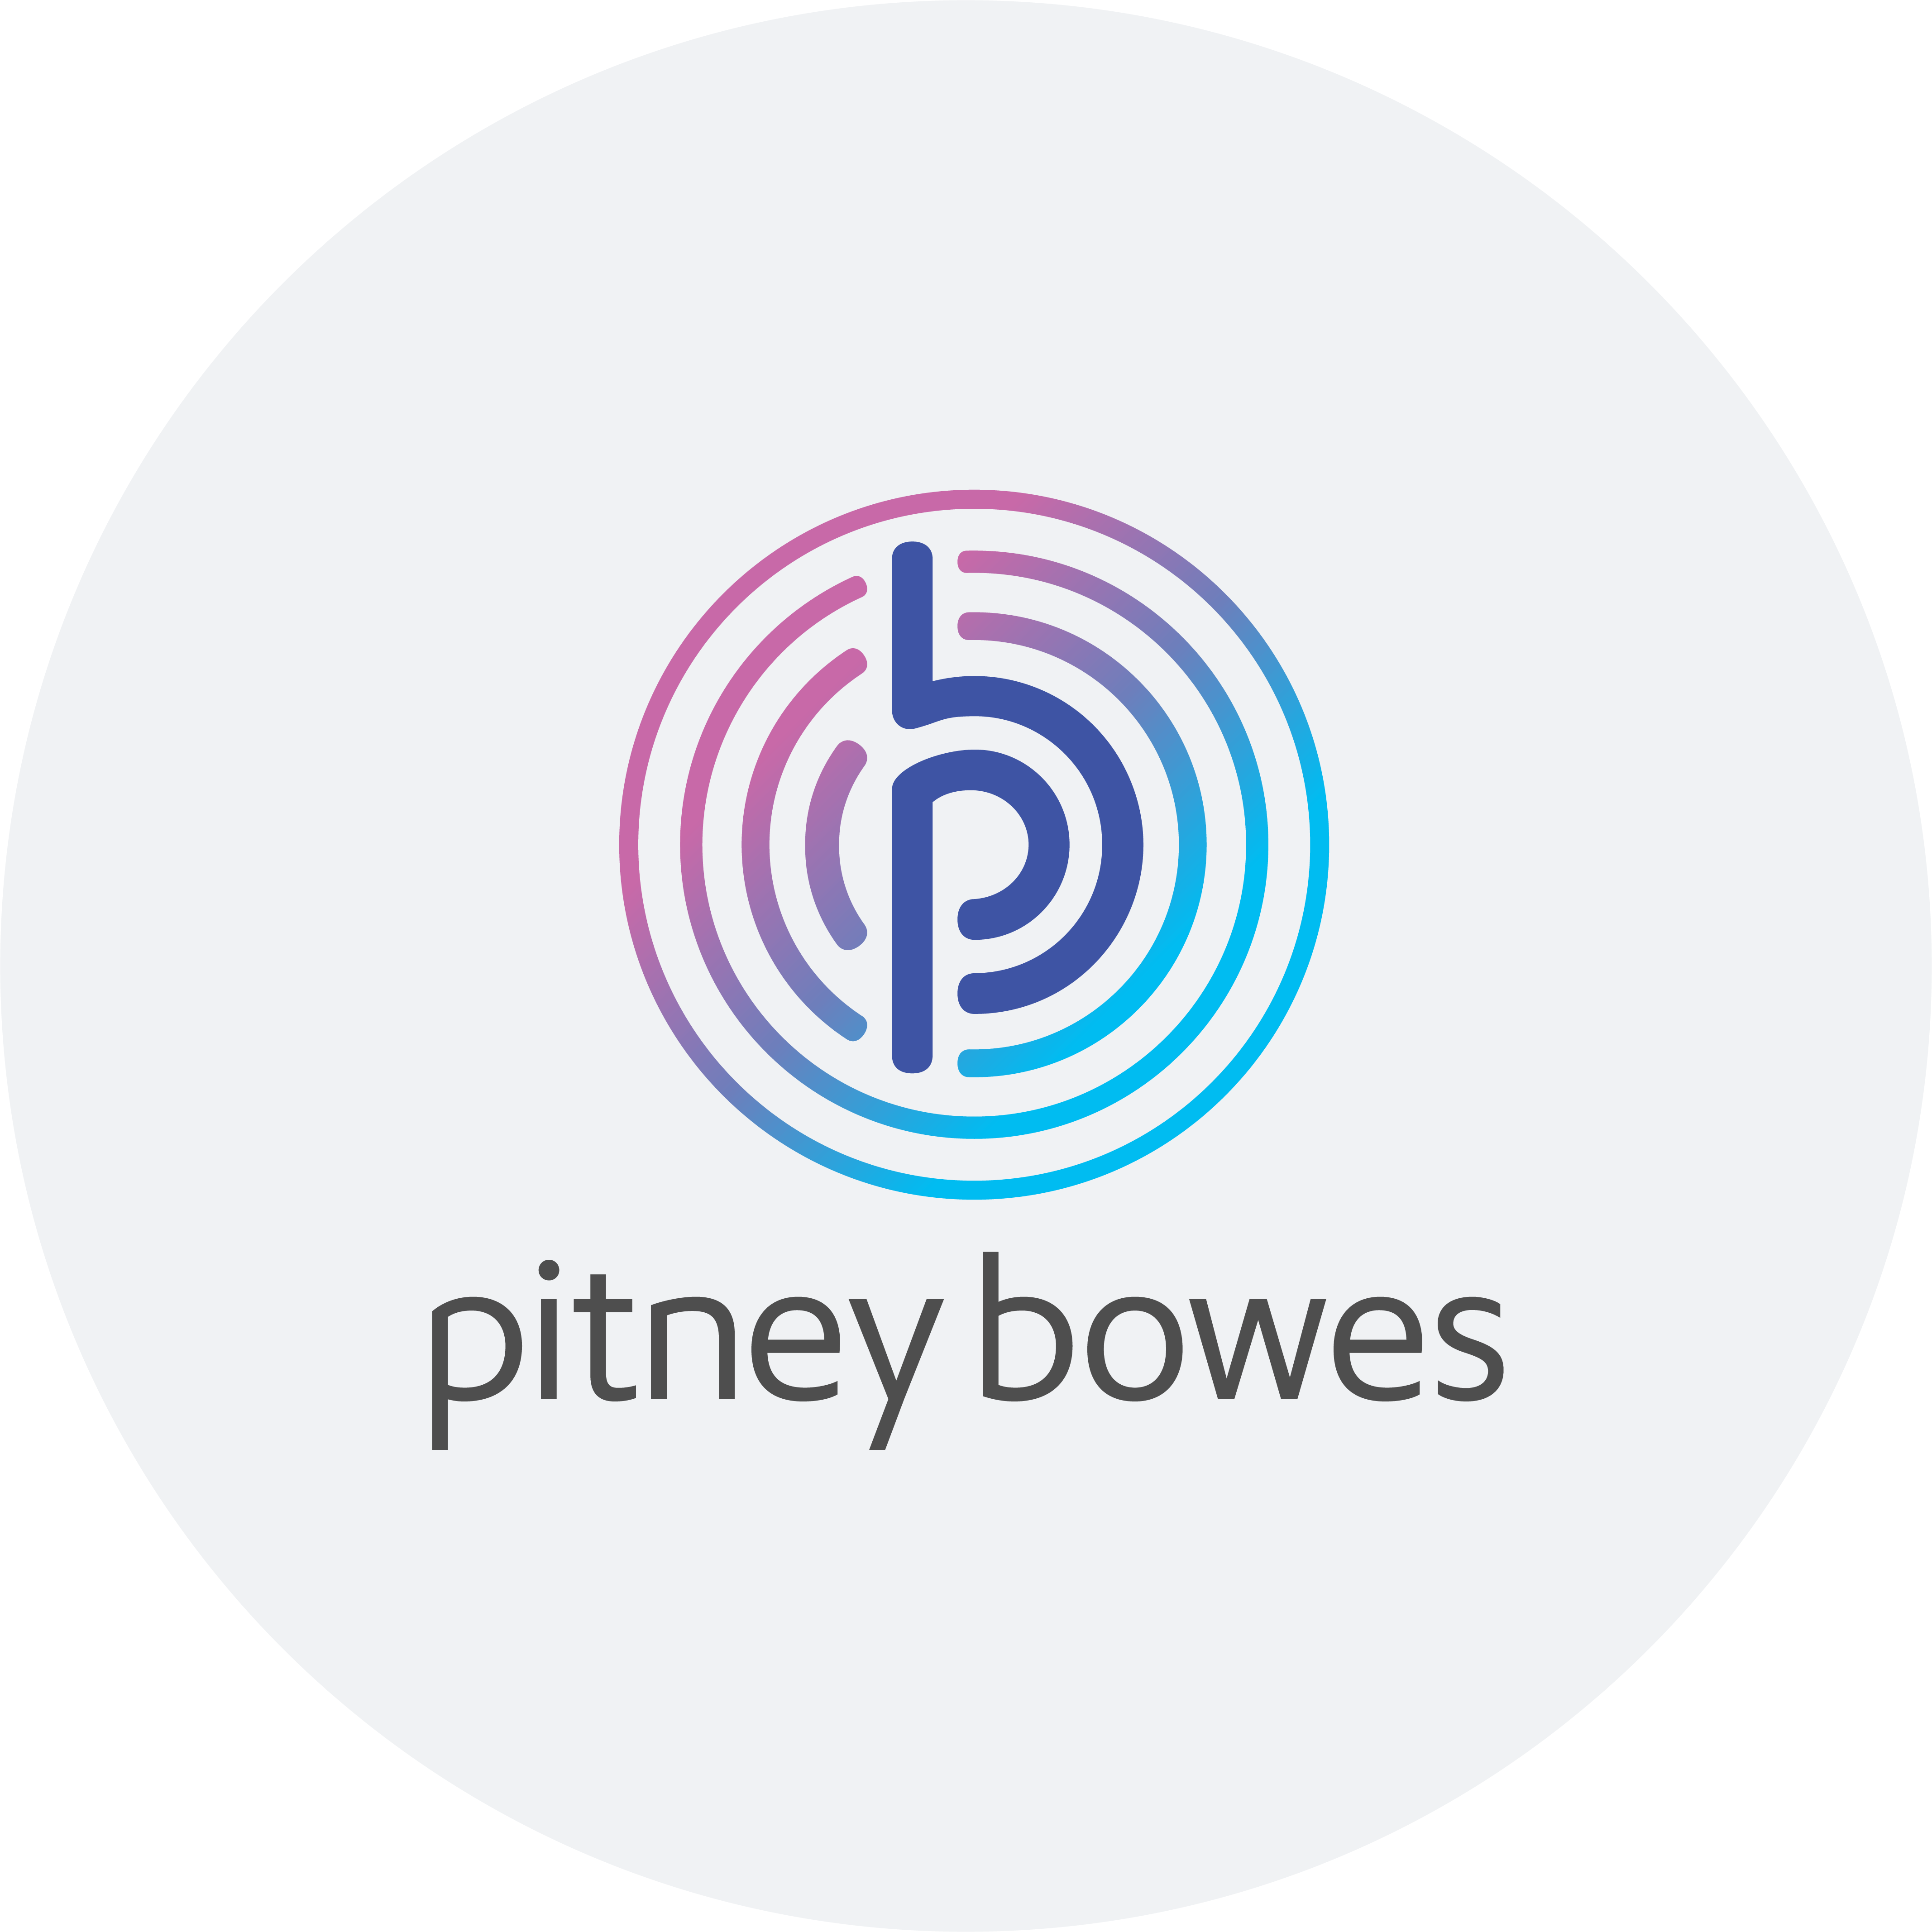 pitneybowes 網路